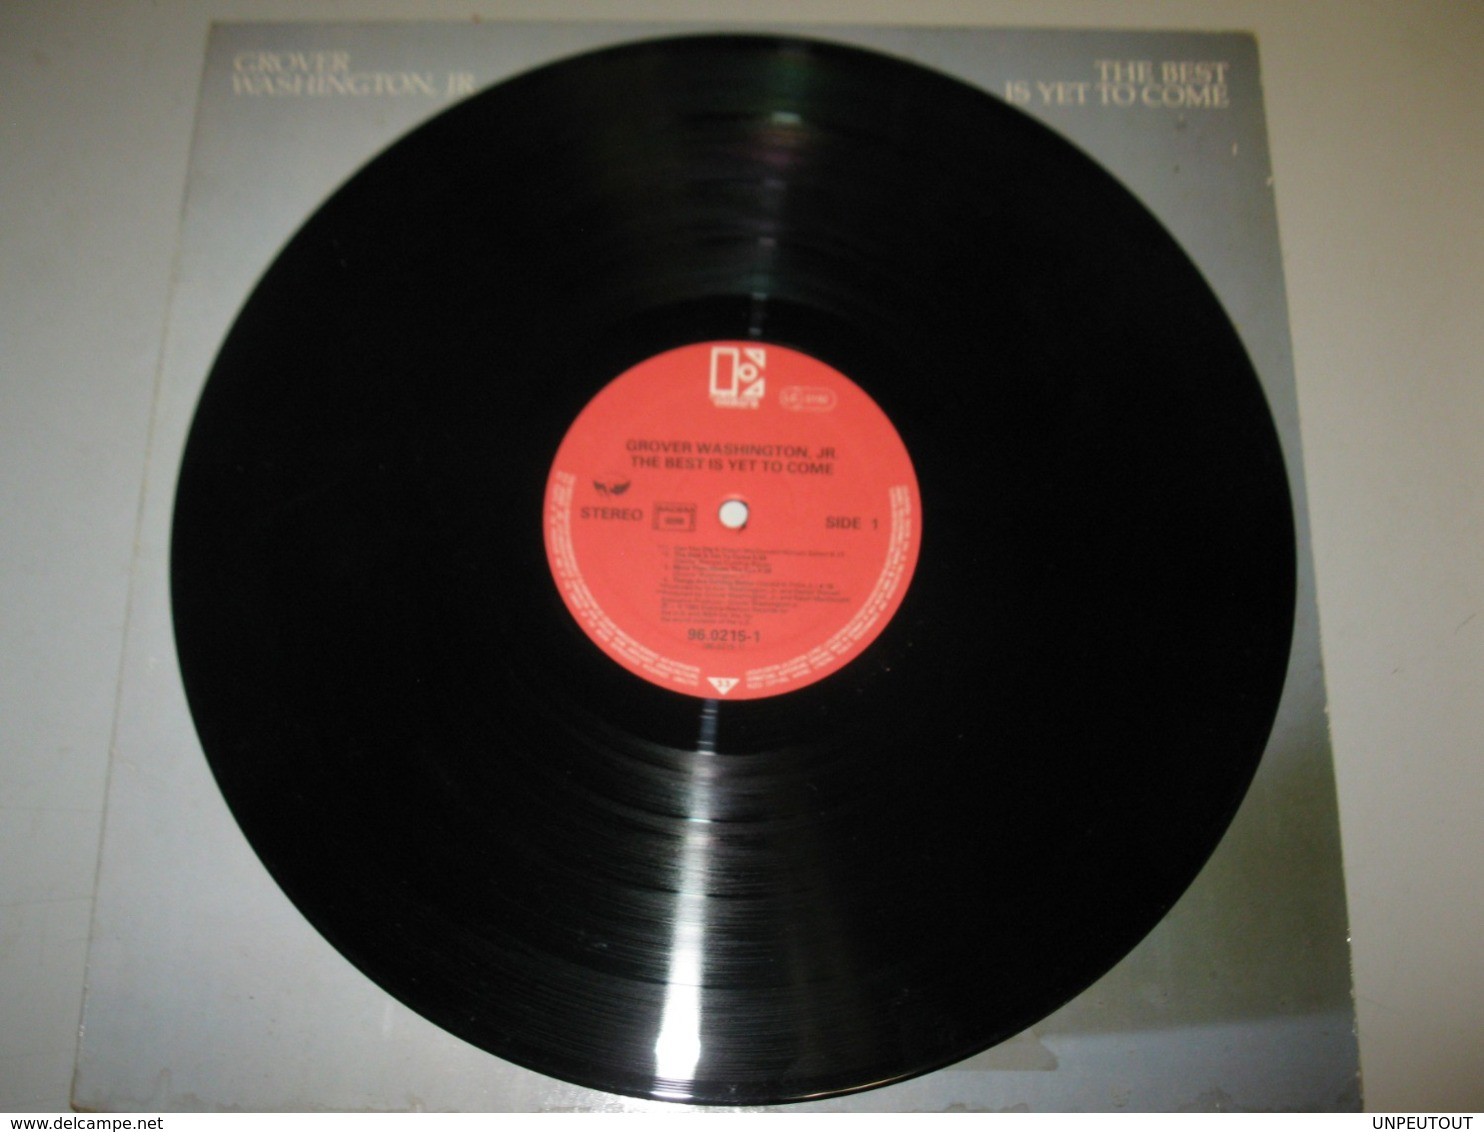 """VINYLE GROVER WASHINGTON JR """"THE BEST IS YET TO COME"""" 33 T ELEKTRA / ASYLUM (1982) - Unclassified"""